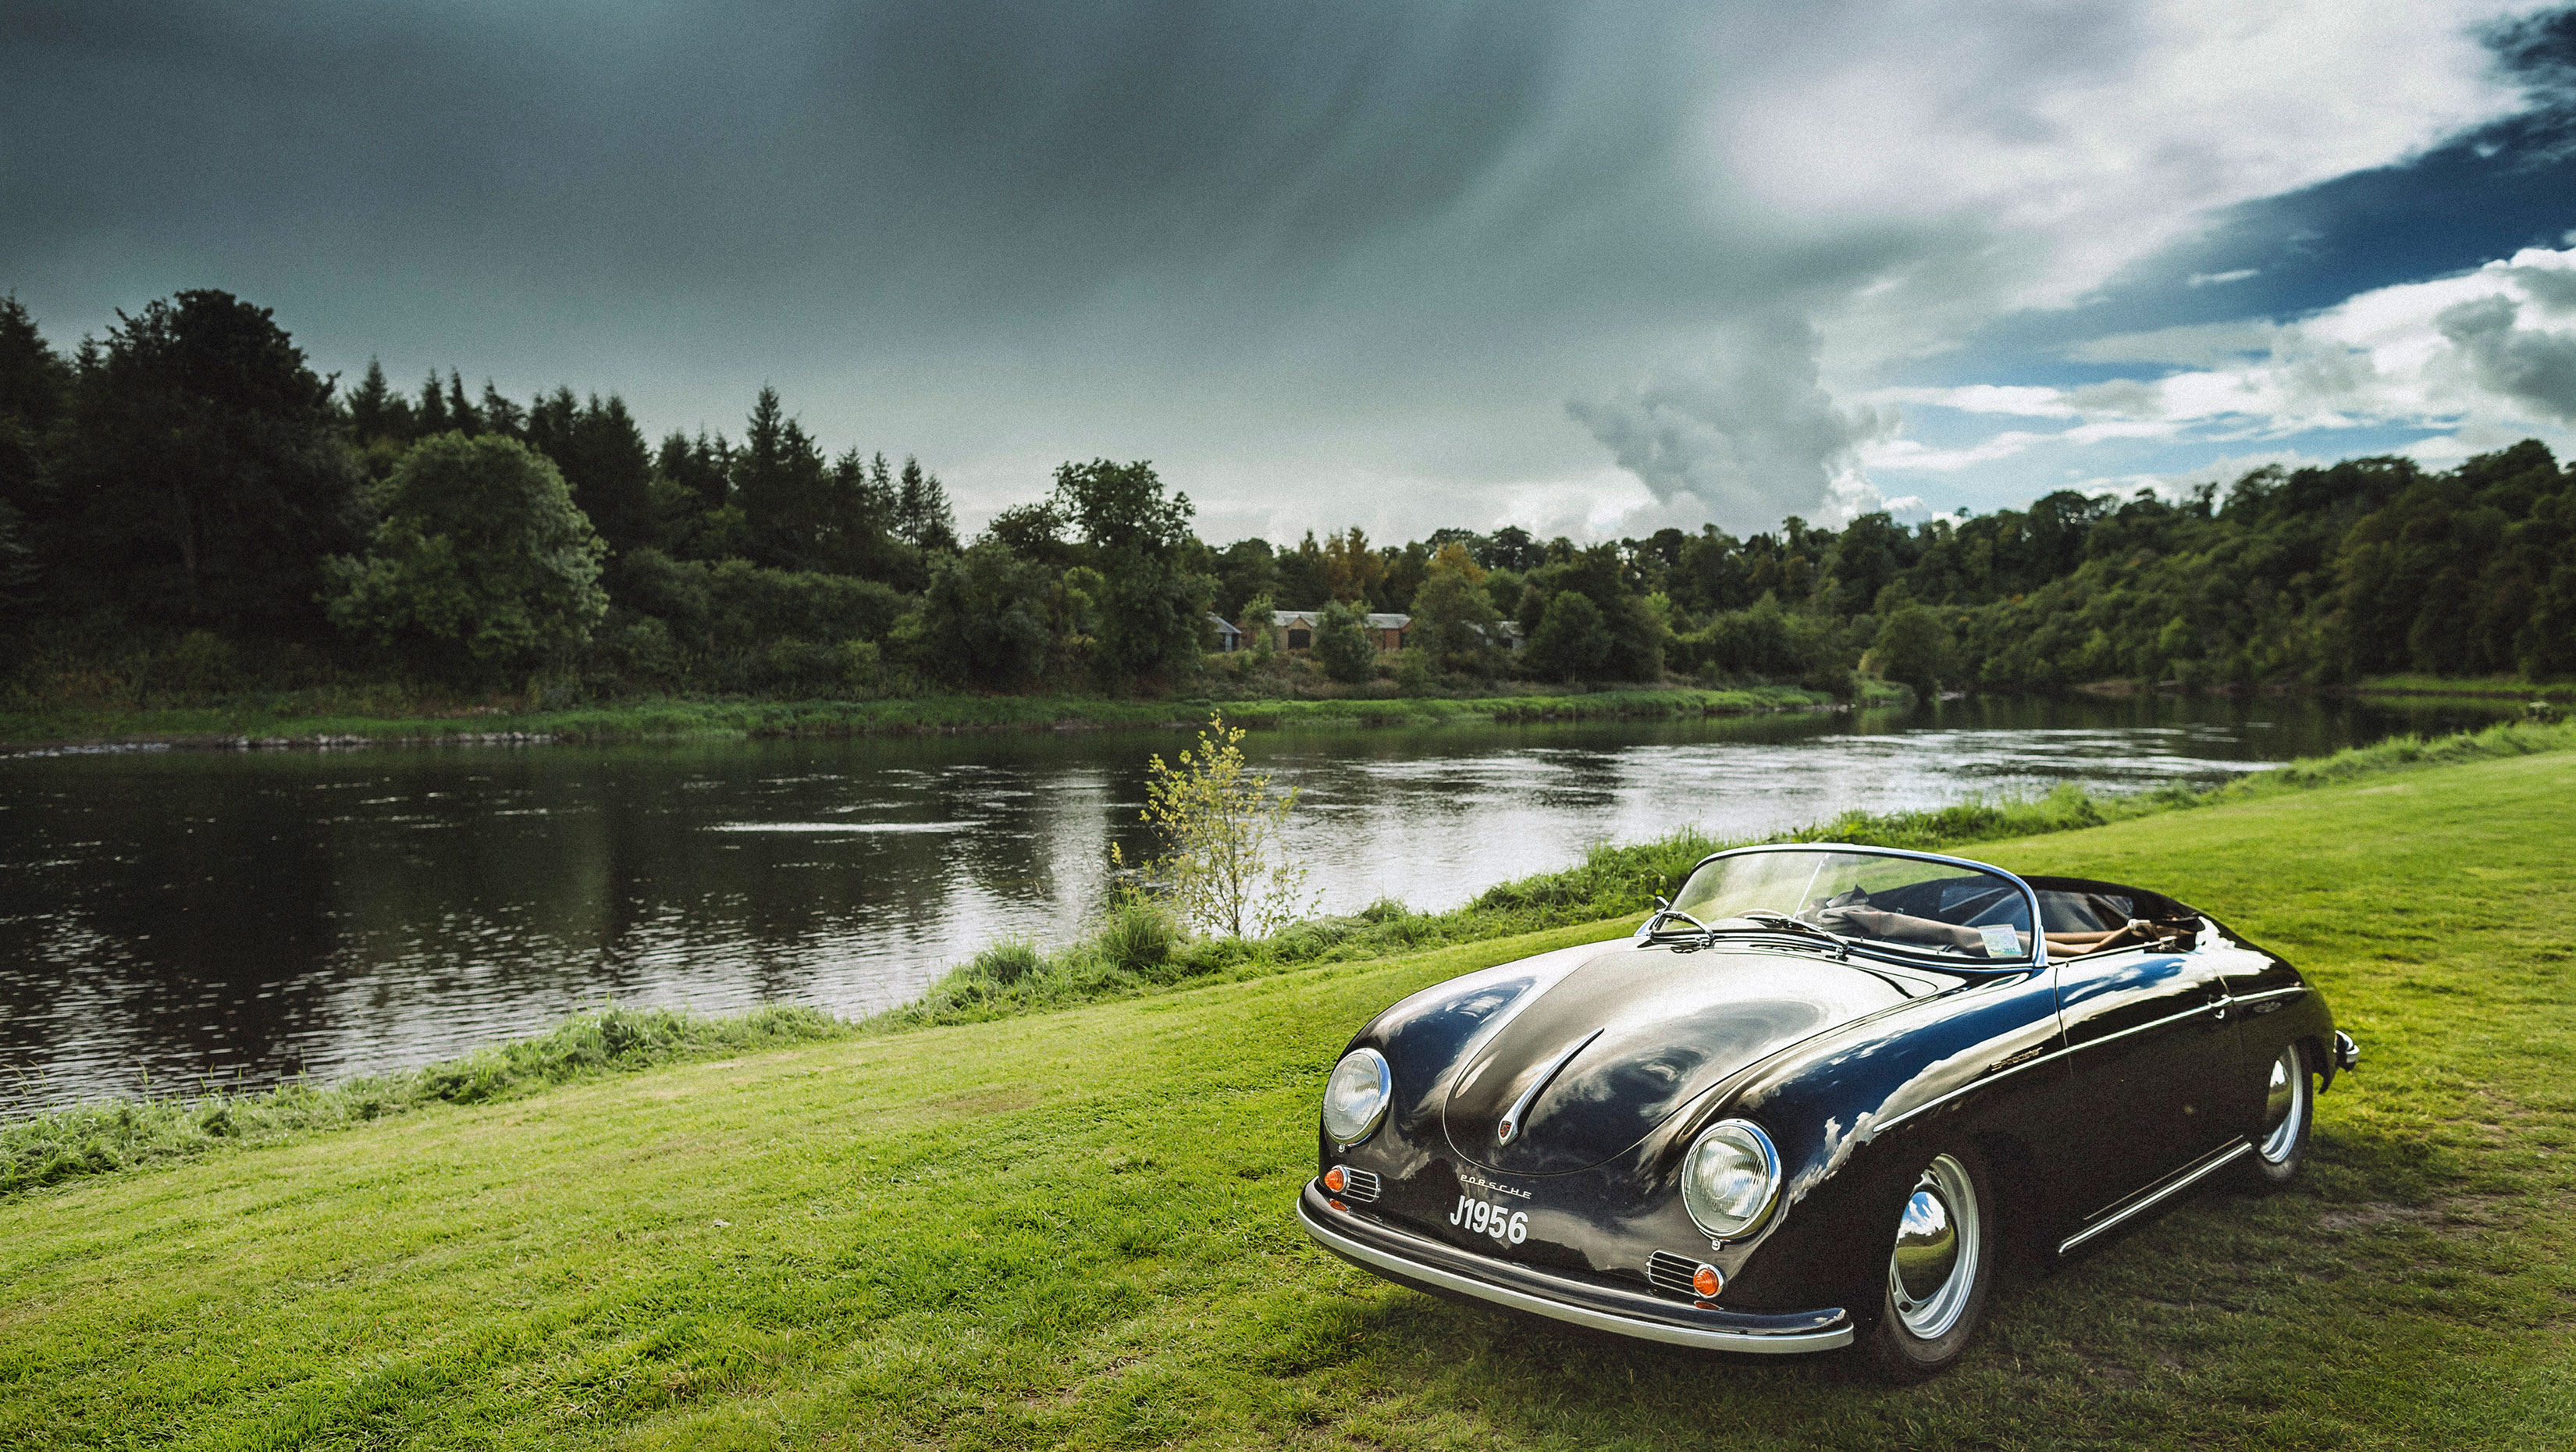 The 356 Speedster is an instantly-recognisable car from Porsche